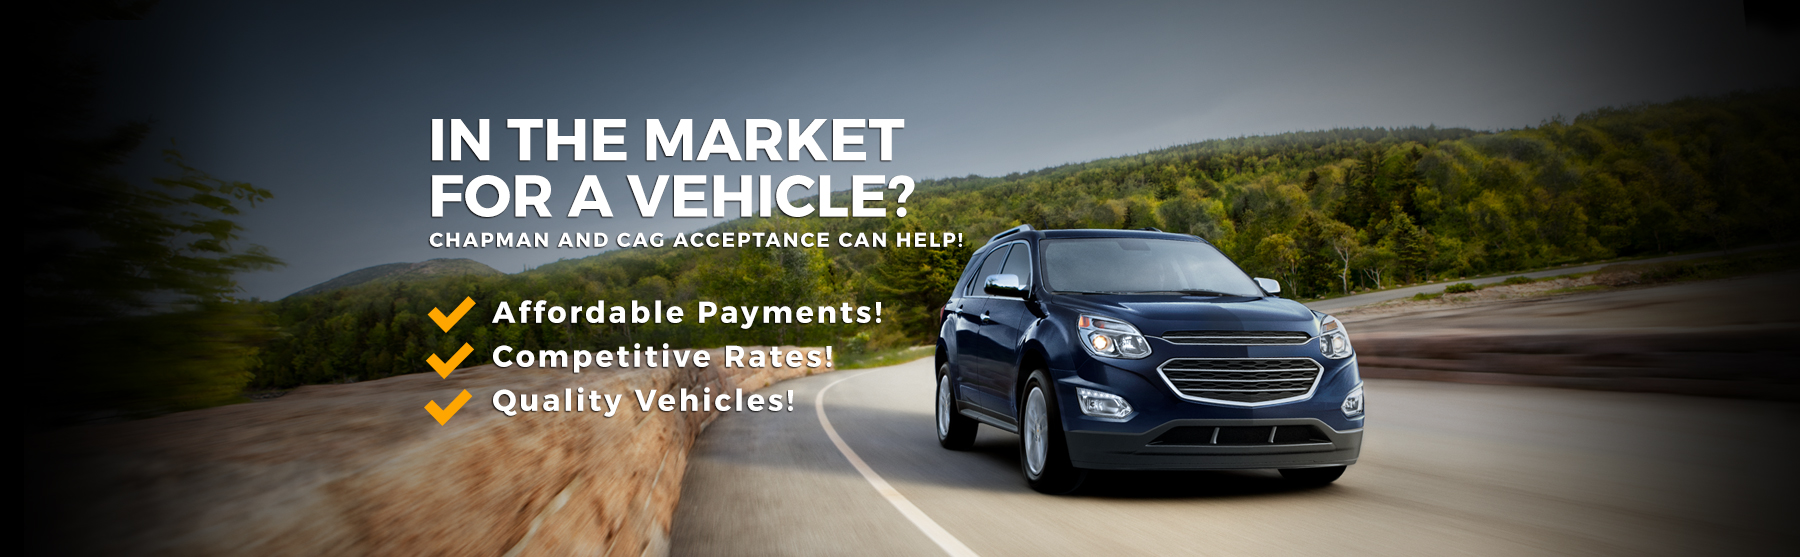 In The market for a new vehicle?